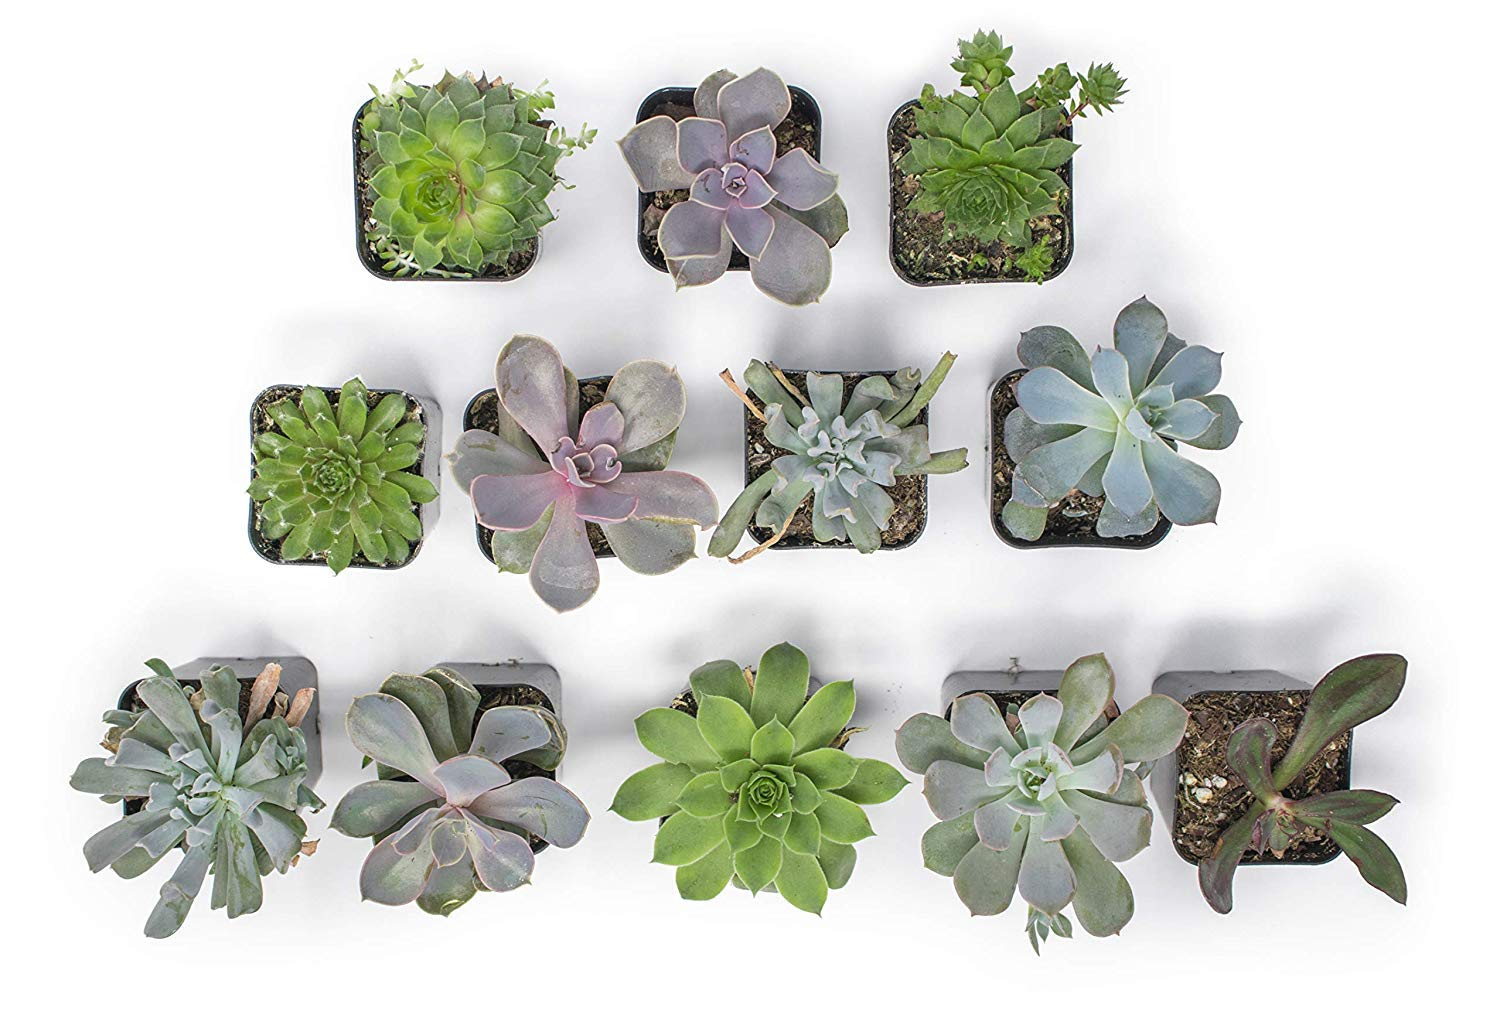 20 Live ''B-Grade'' Succulents | House Plants with Minor Flaws | Healthy Discounted Cheap Succulent Plants in Planter Pots with Soil by Plants for Pets by Plants for Pets (Image #7)